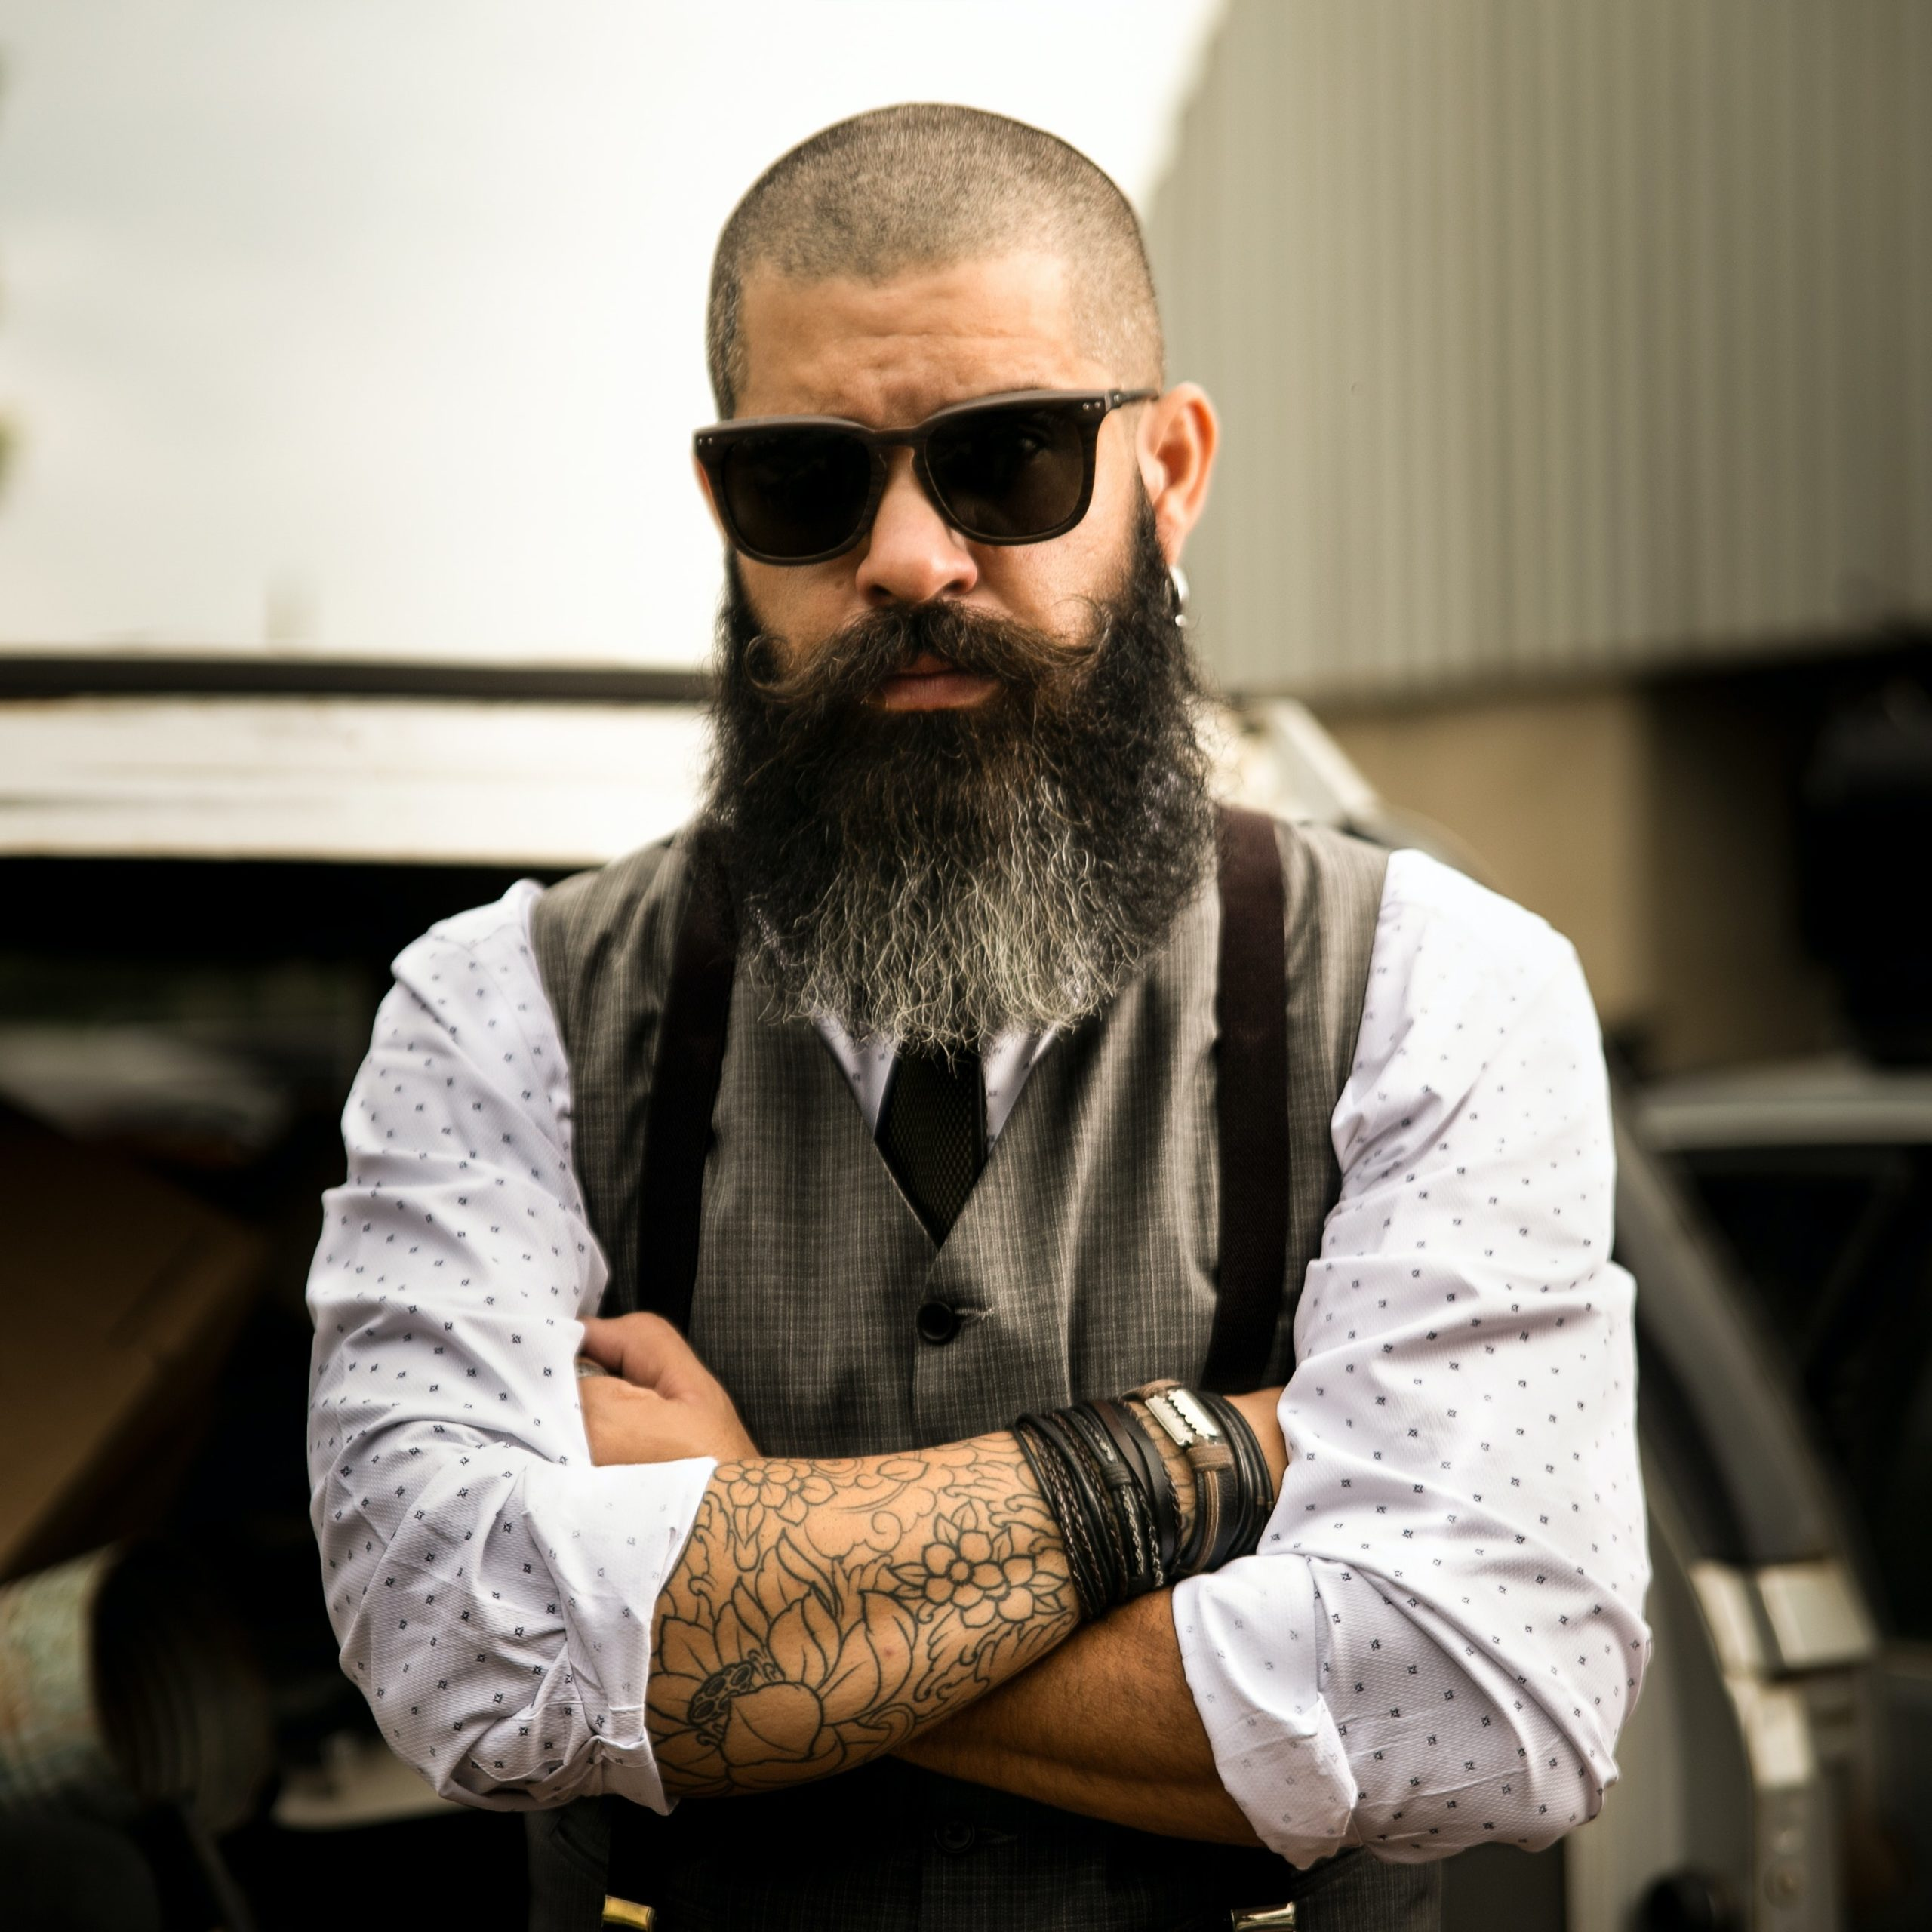 Beard Grooming Products Online For You